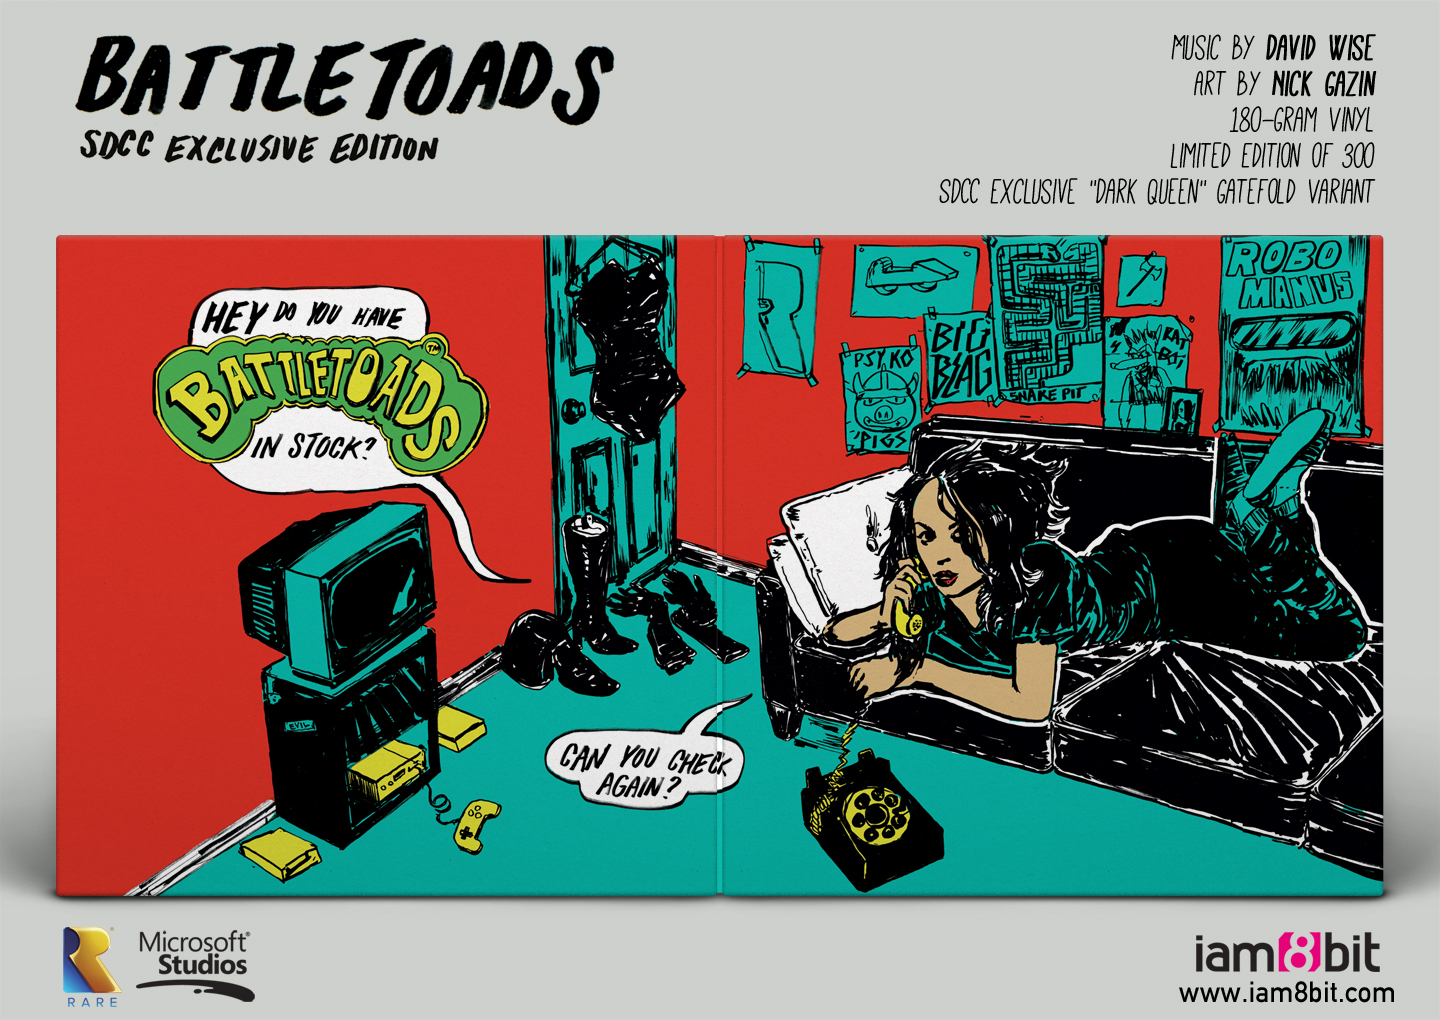 Battletoads Vinyl Record Soundtrack Is Stunning And Not